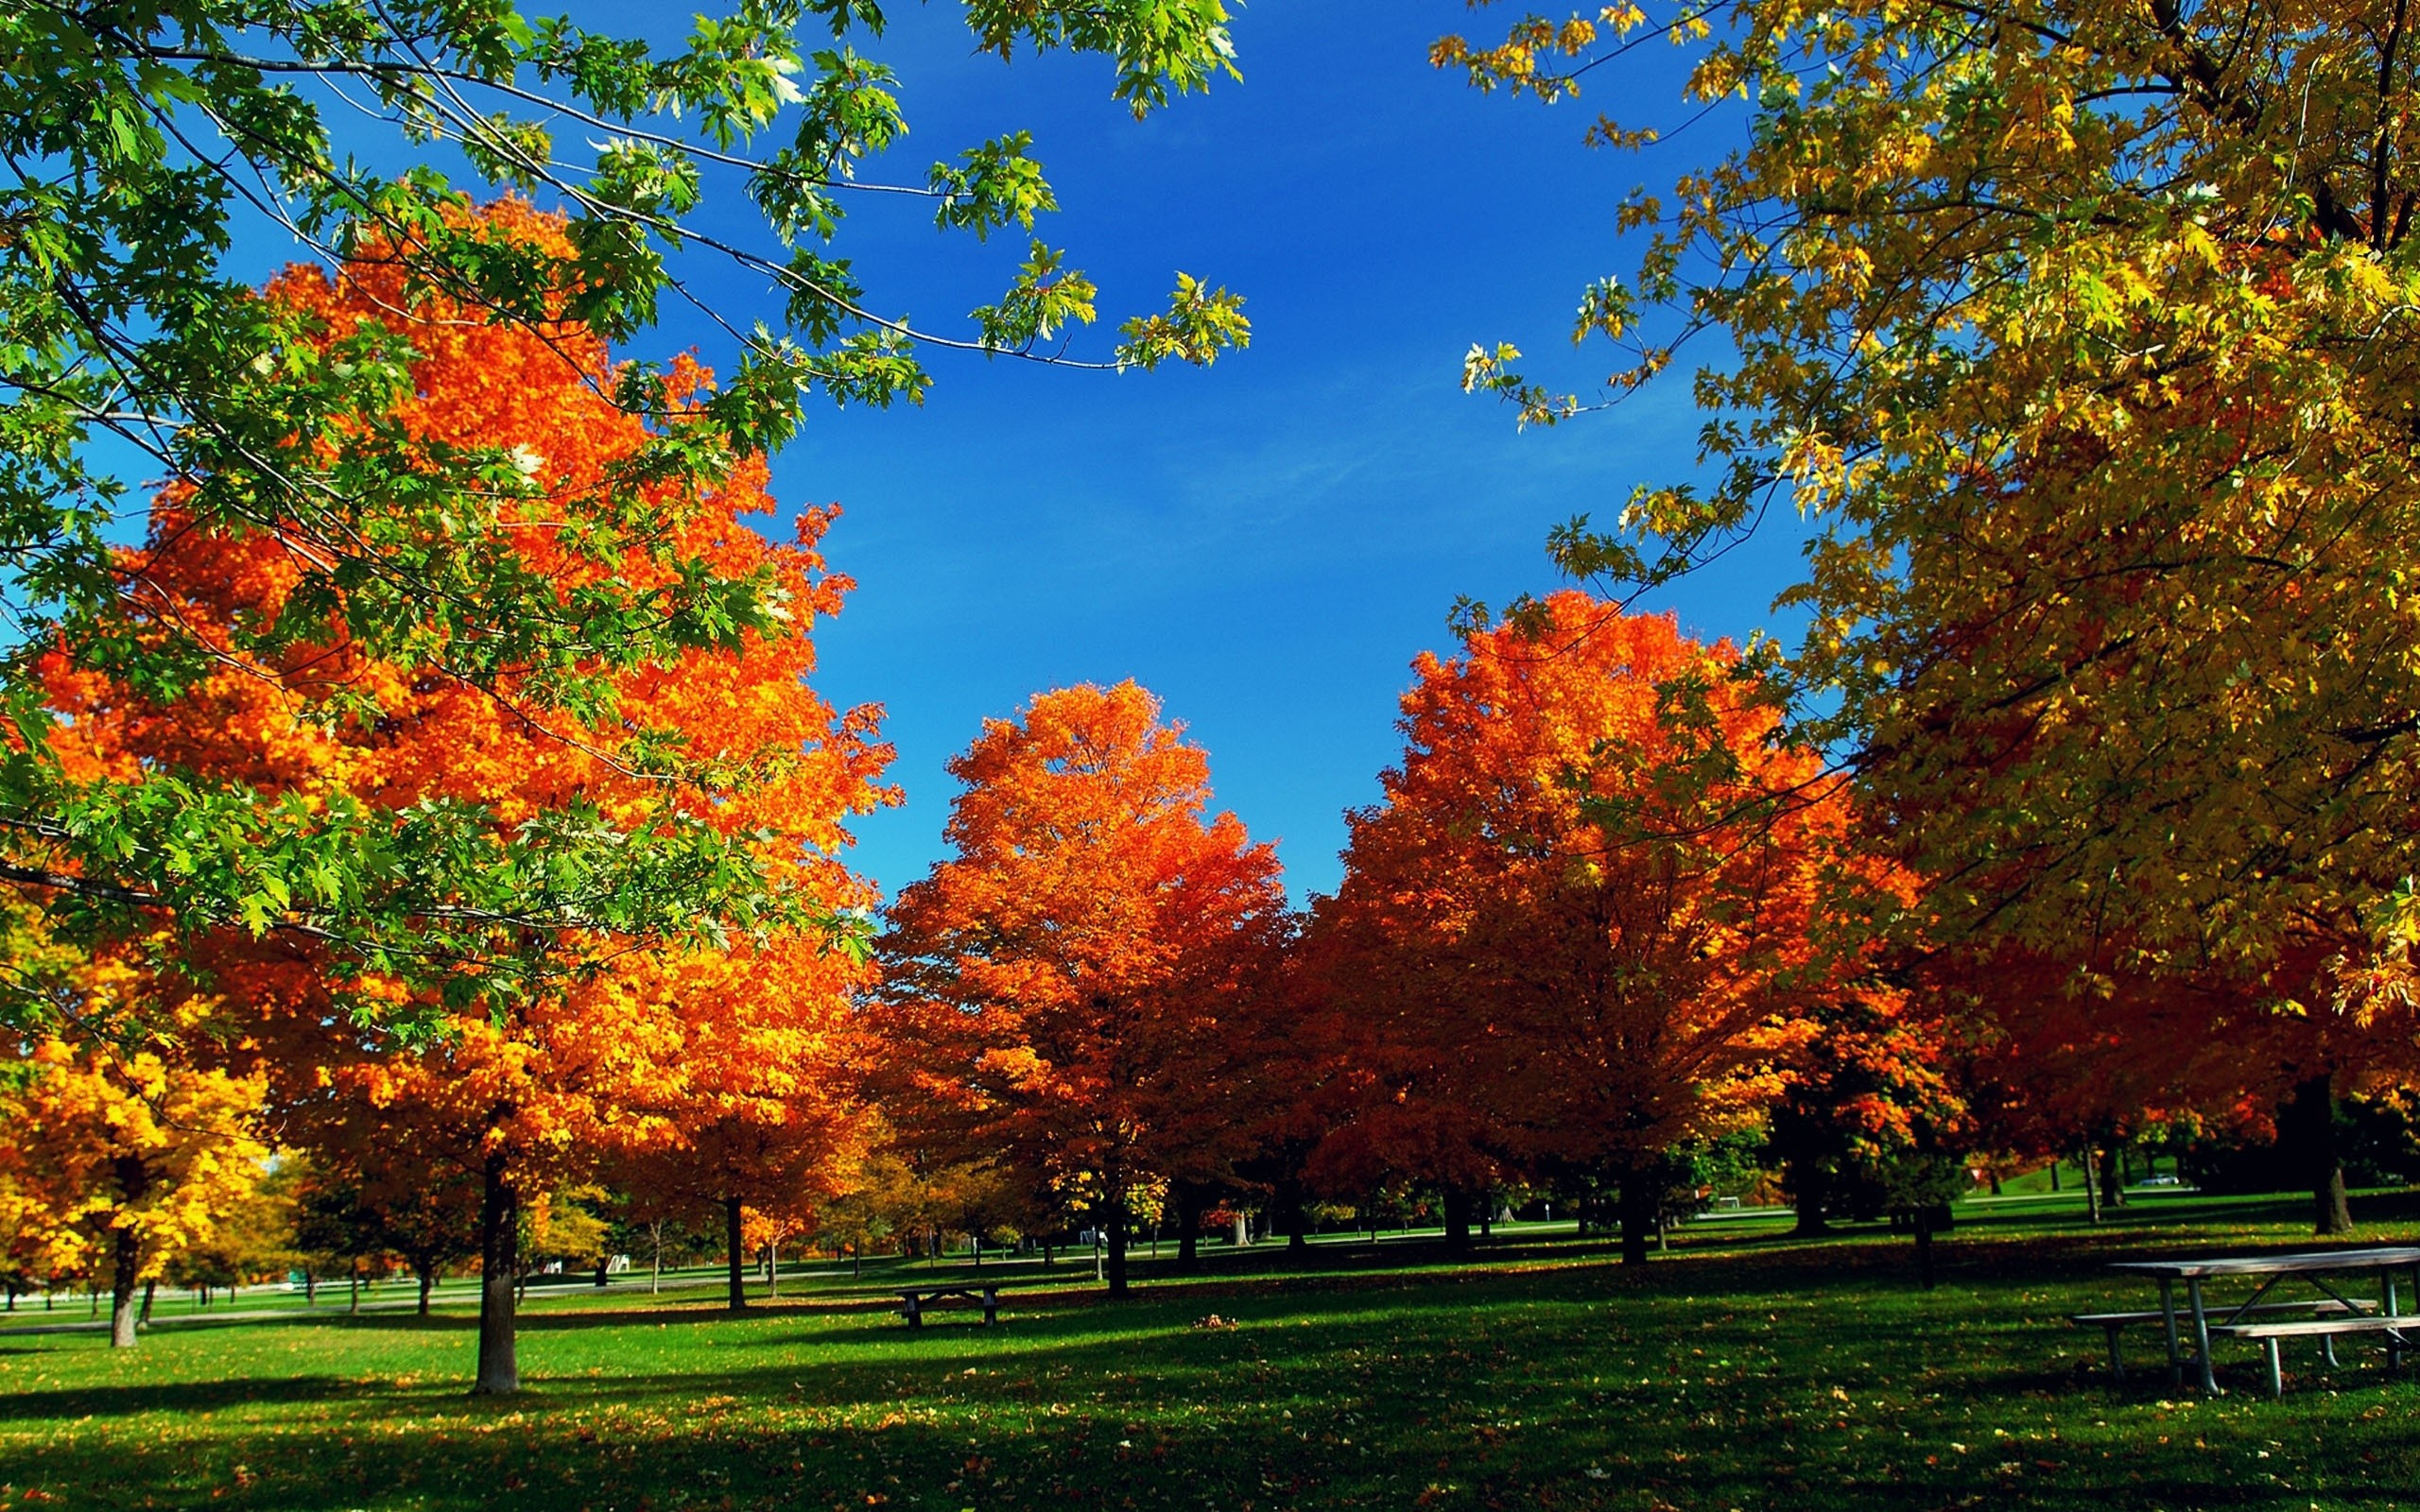 autumn wallpaper widescreen  u00b7 u2460 download free amazing high